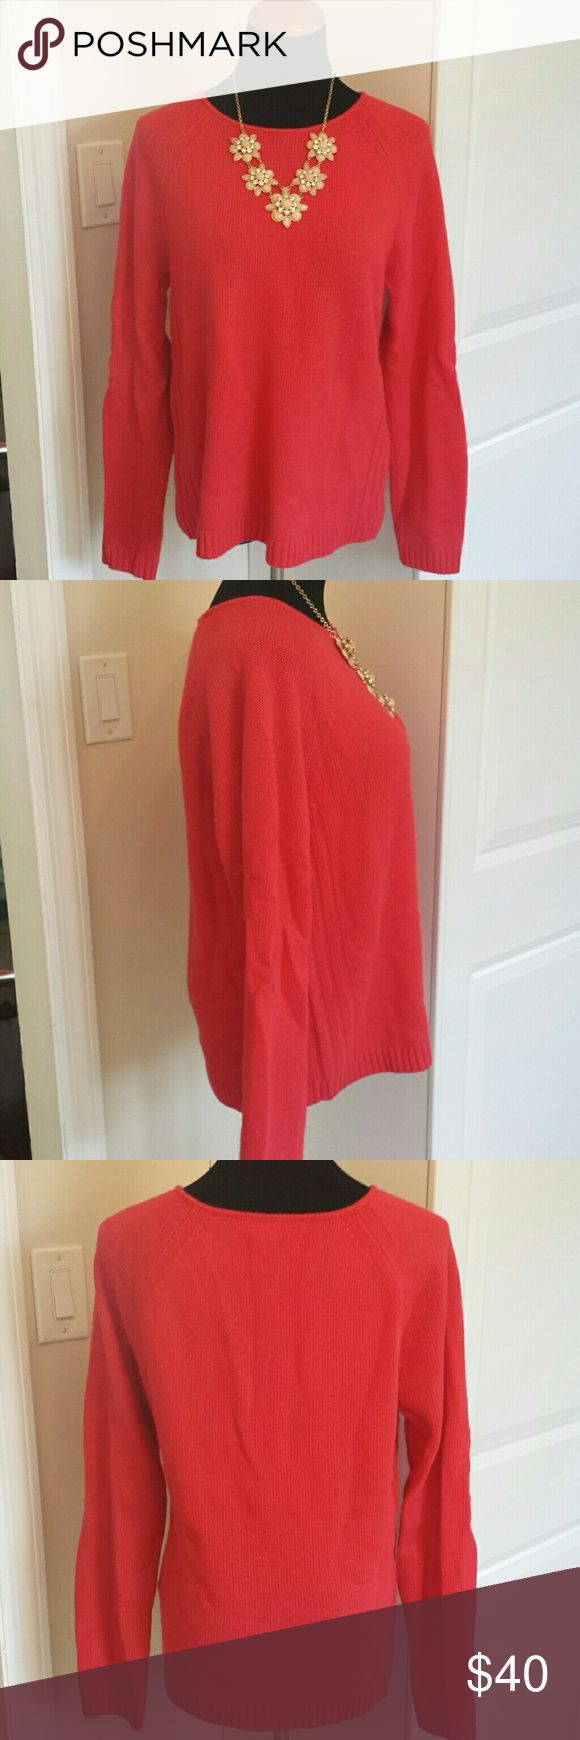 NWOT hot pink oversized fuzzy J. Crew sweater Super cute soft and fuzzy wide neck sweater from J. Crew.  Tagged size L but is cut to be a buy oversized. Baggy and cute. Perfect for pairing with jeans or leggings. Color is hot pink, most like what's shown in last picture. Brand new, never worn. Feel free to make an offer! J. Crew Sweaters